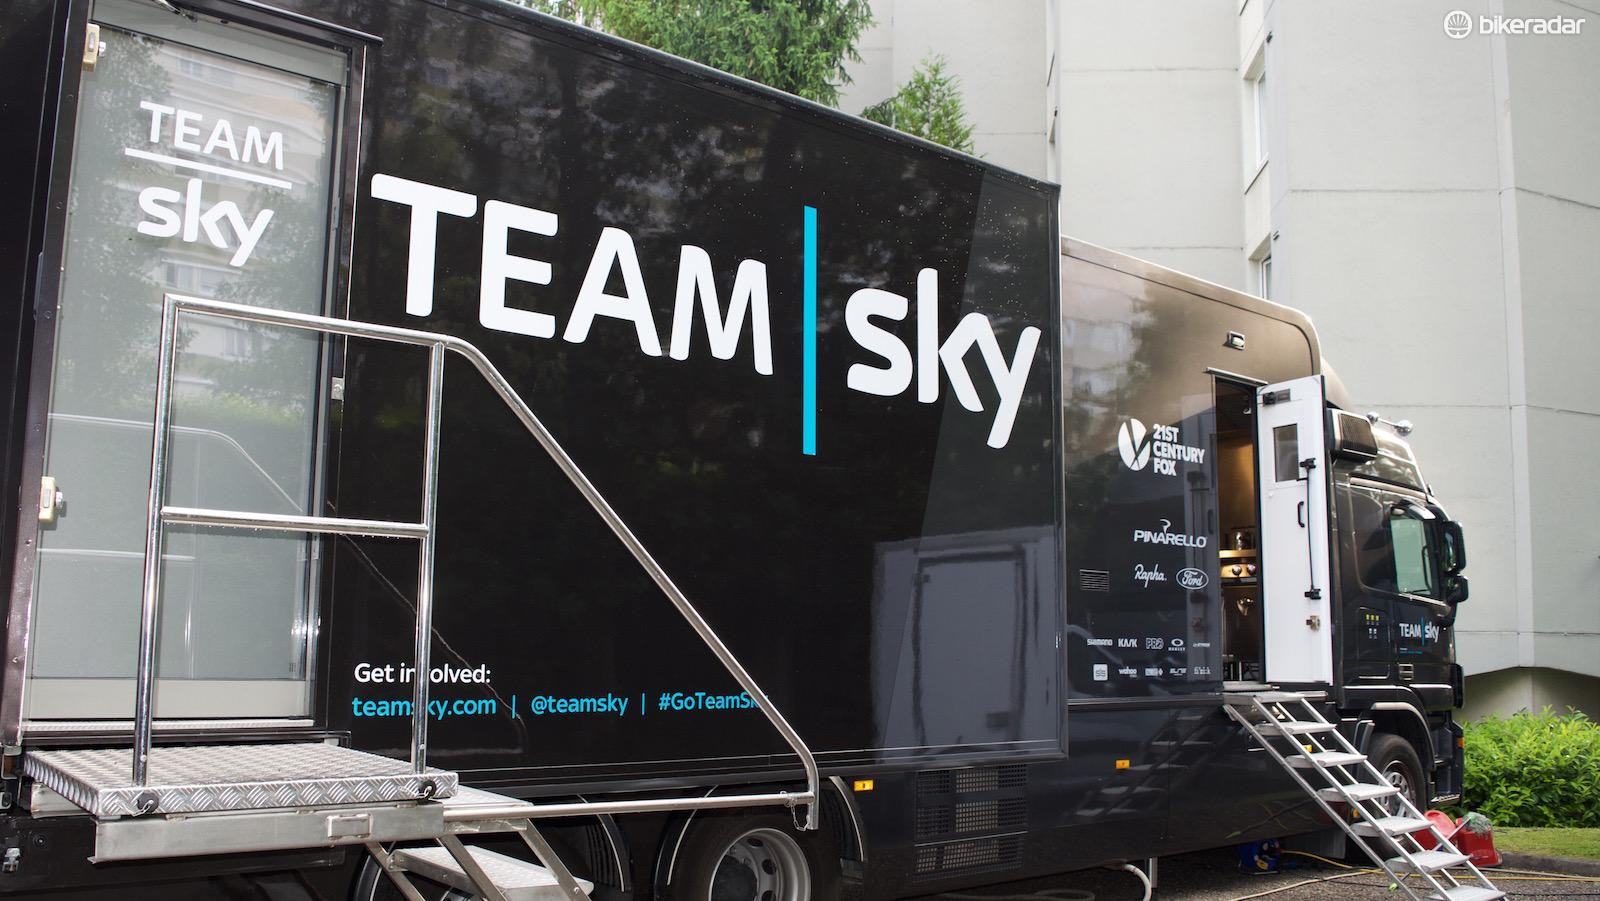 The Team Sky kitchen truck